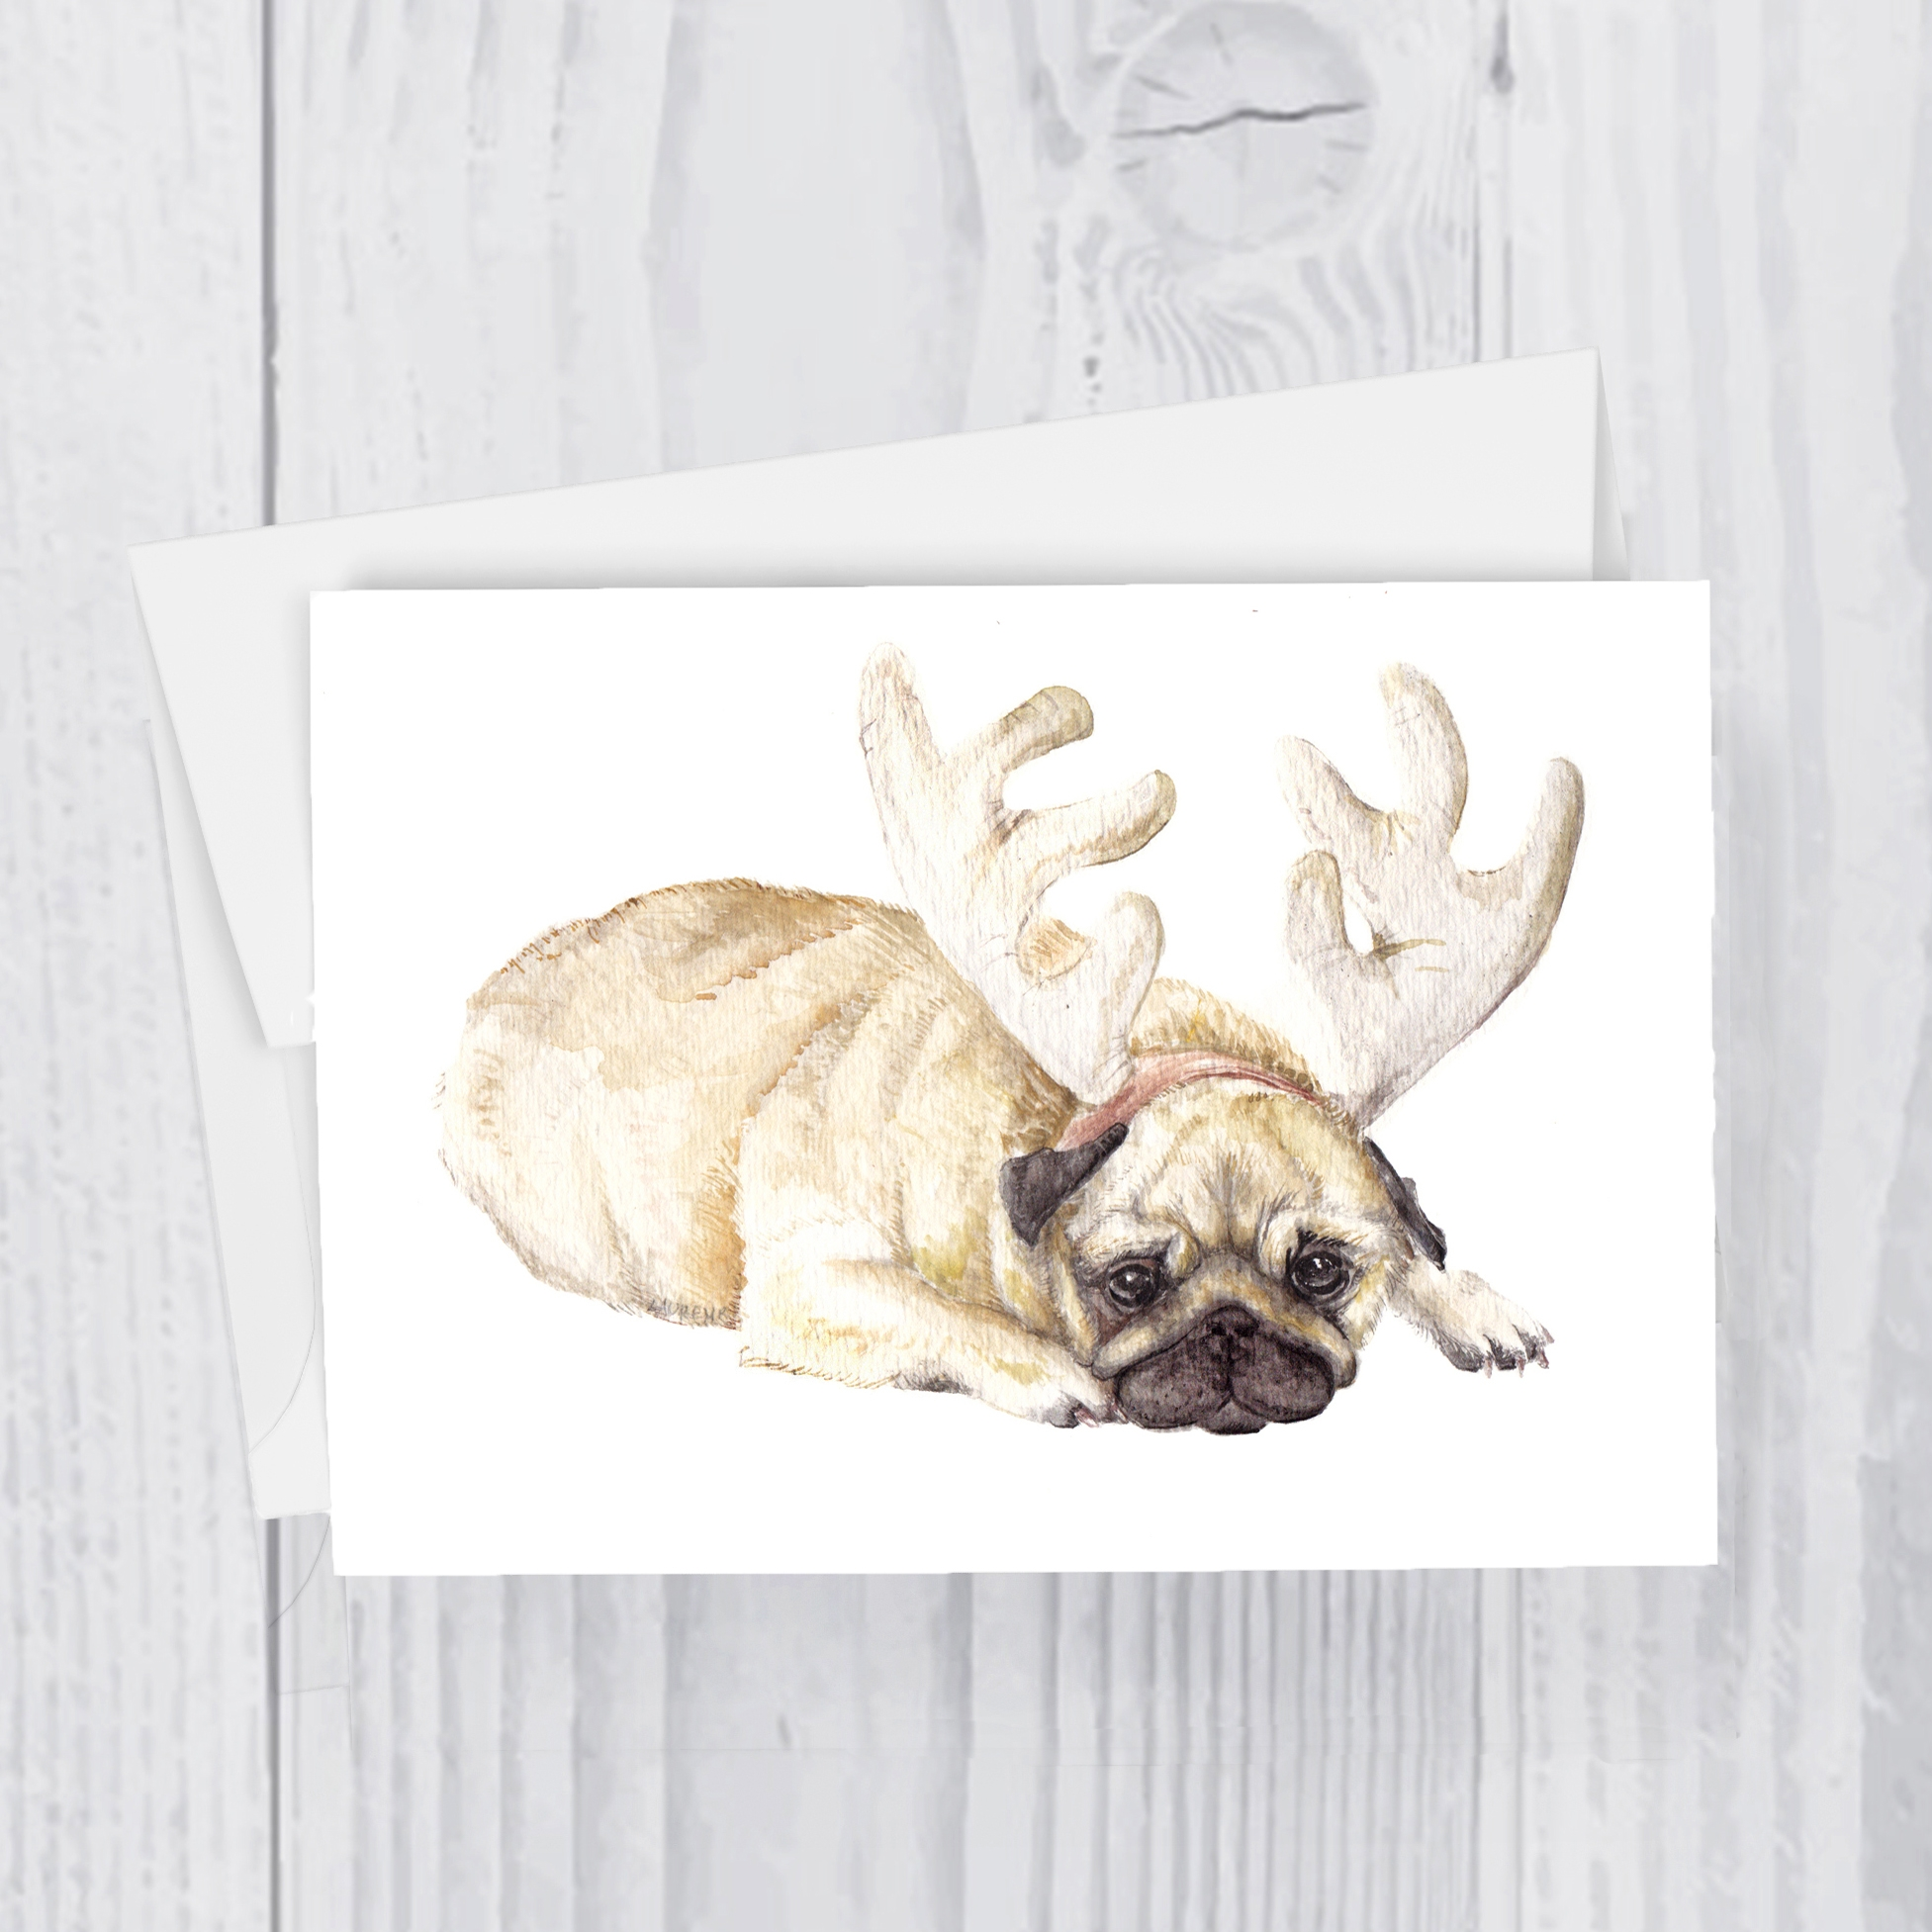 Wandering Laur Fine Art  Detailed and playful watercolor animal art.